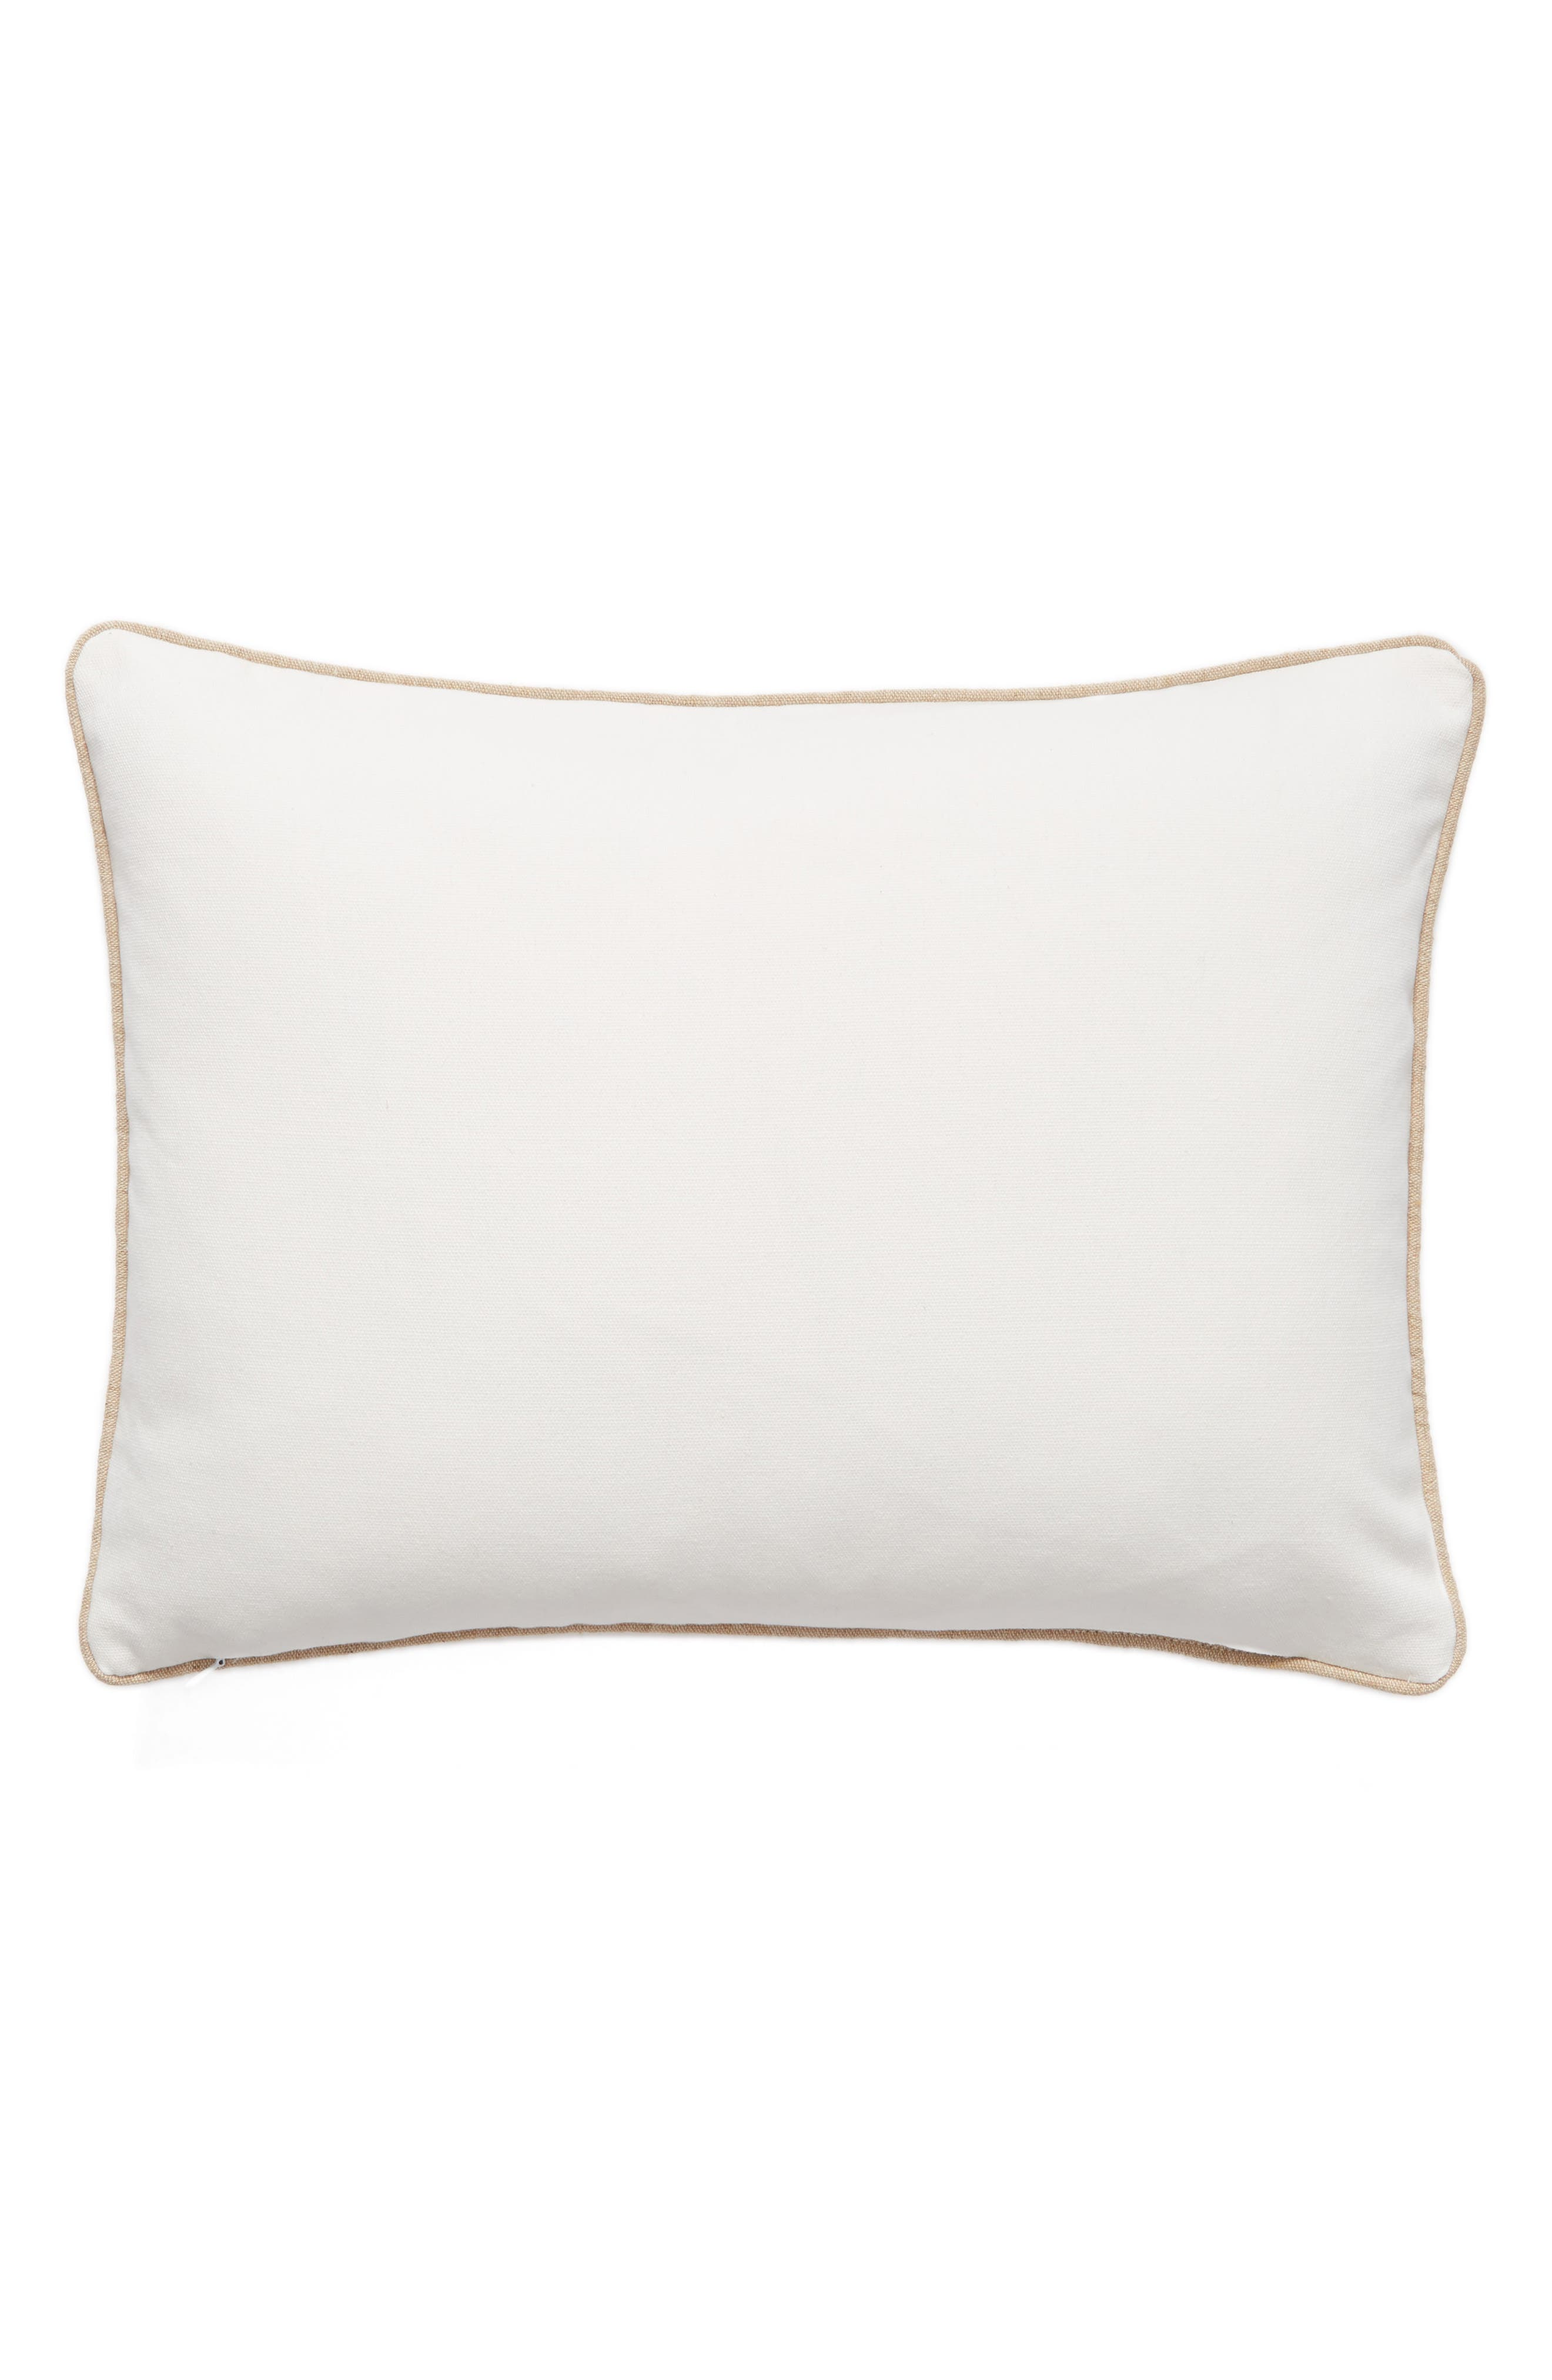 Flawless Accent Pillow,                             Alternate thumbnail 2, color,                             White